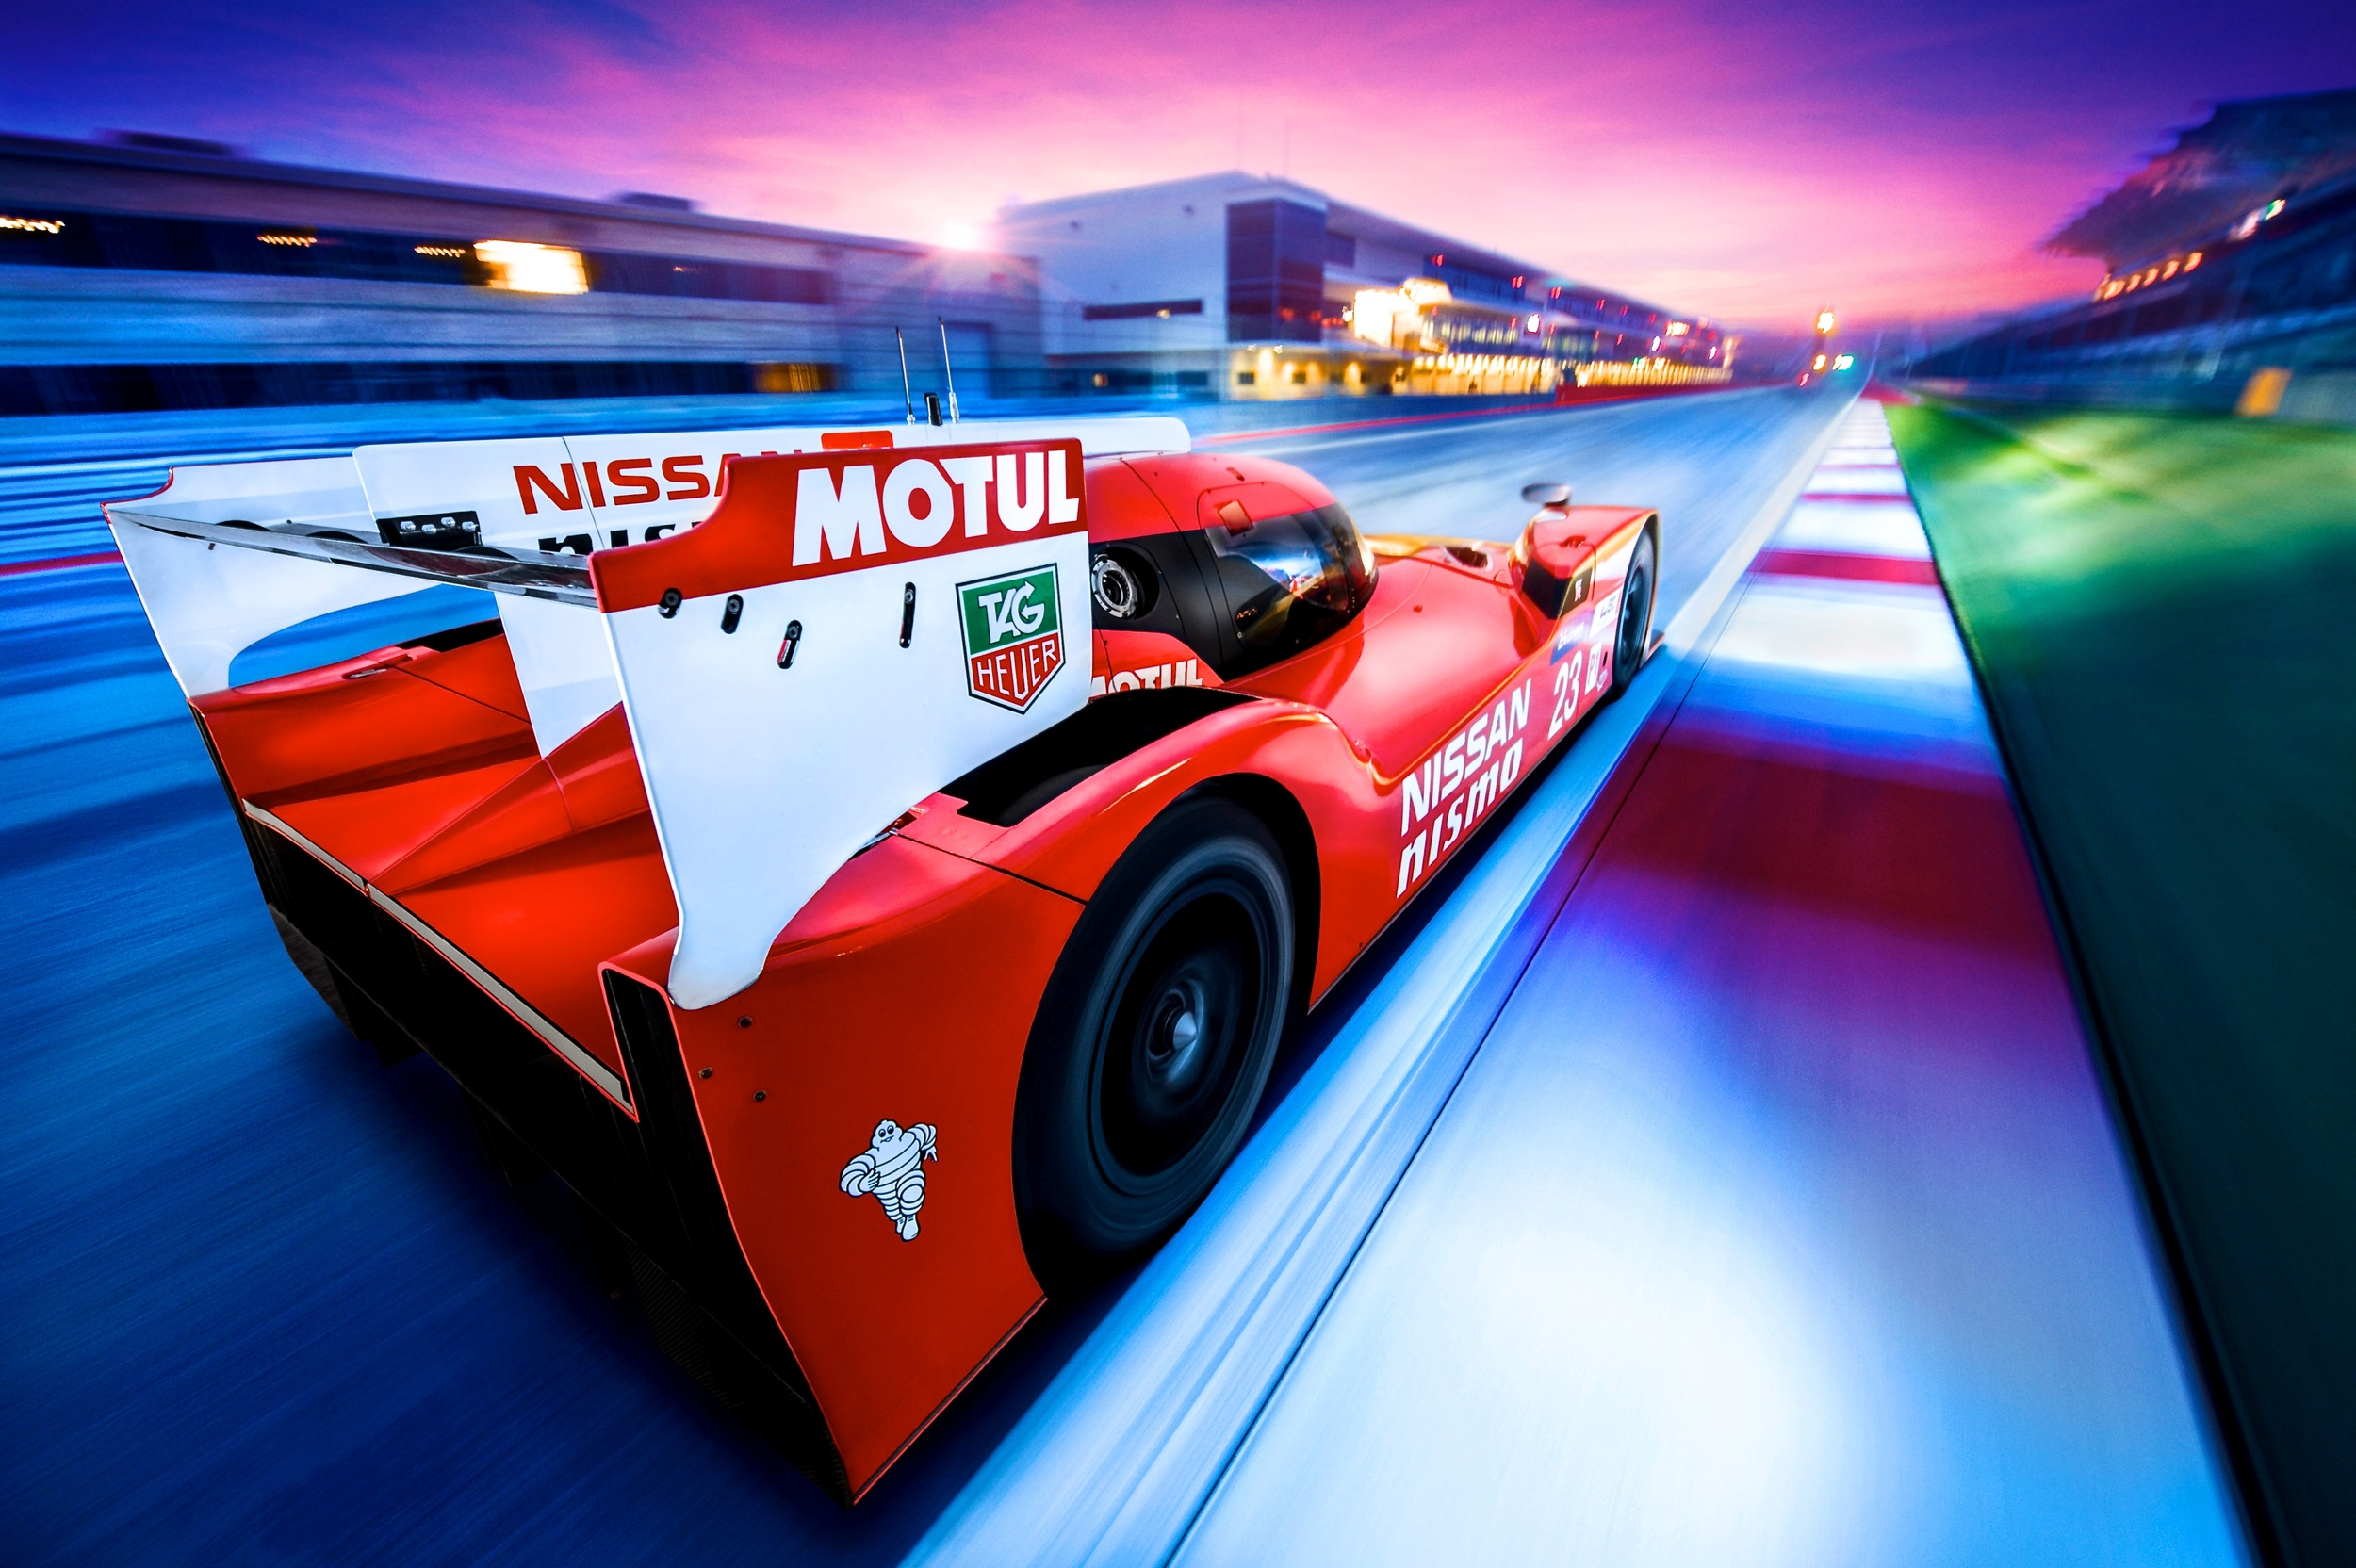 featured_images_LMP1_nissan 4.jpg